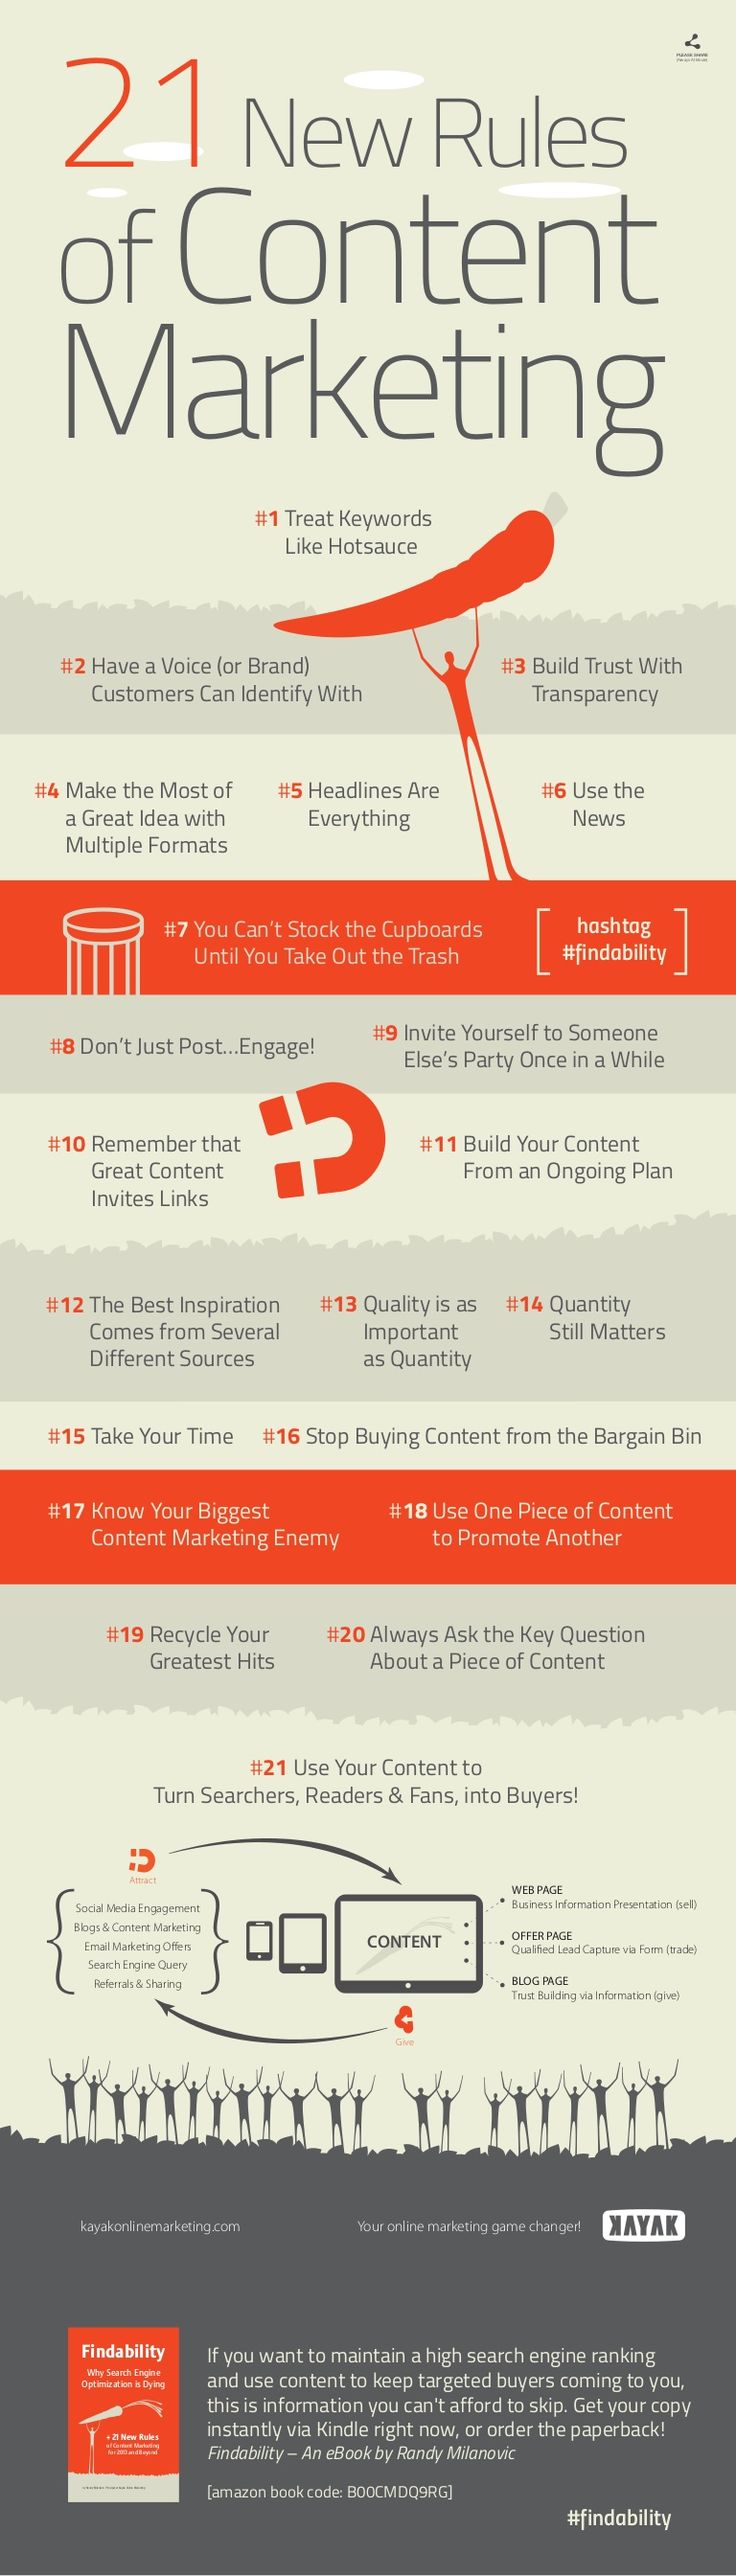 21 new rules of #ContentMarketing #infographic